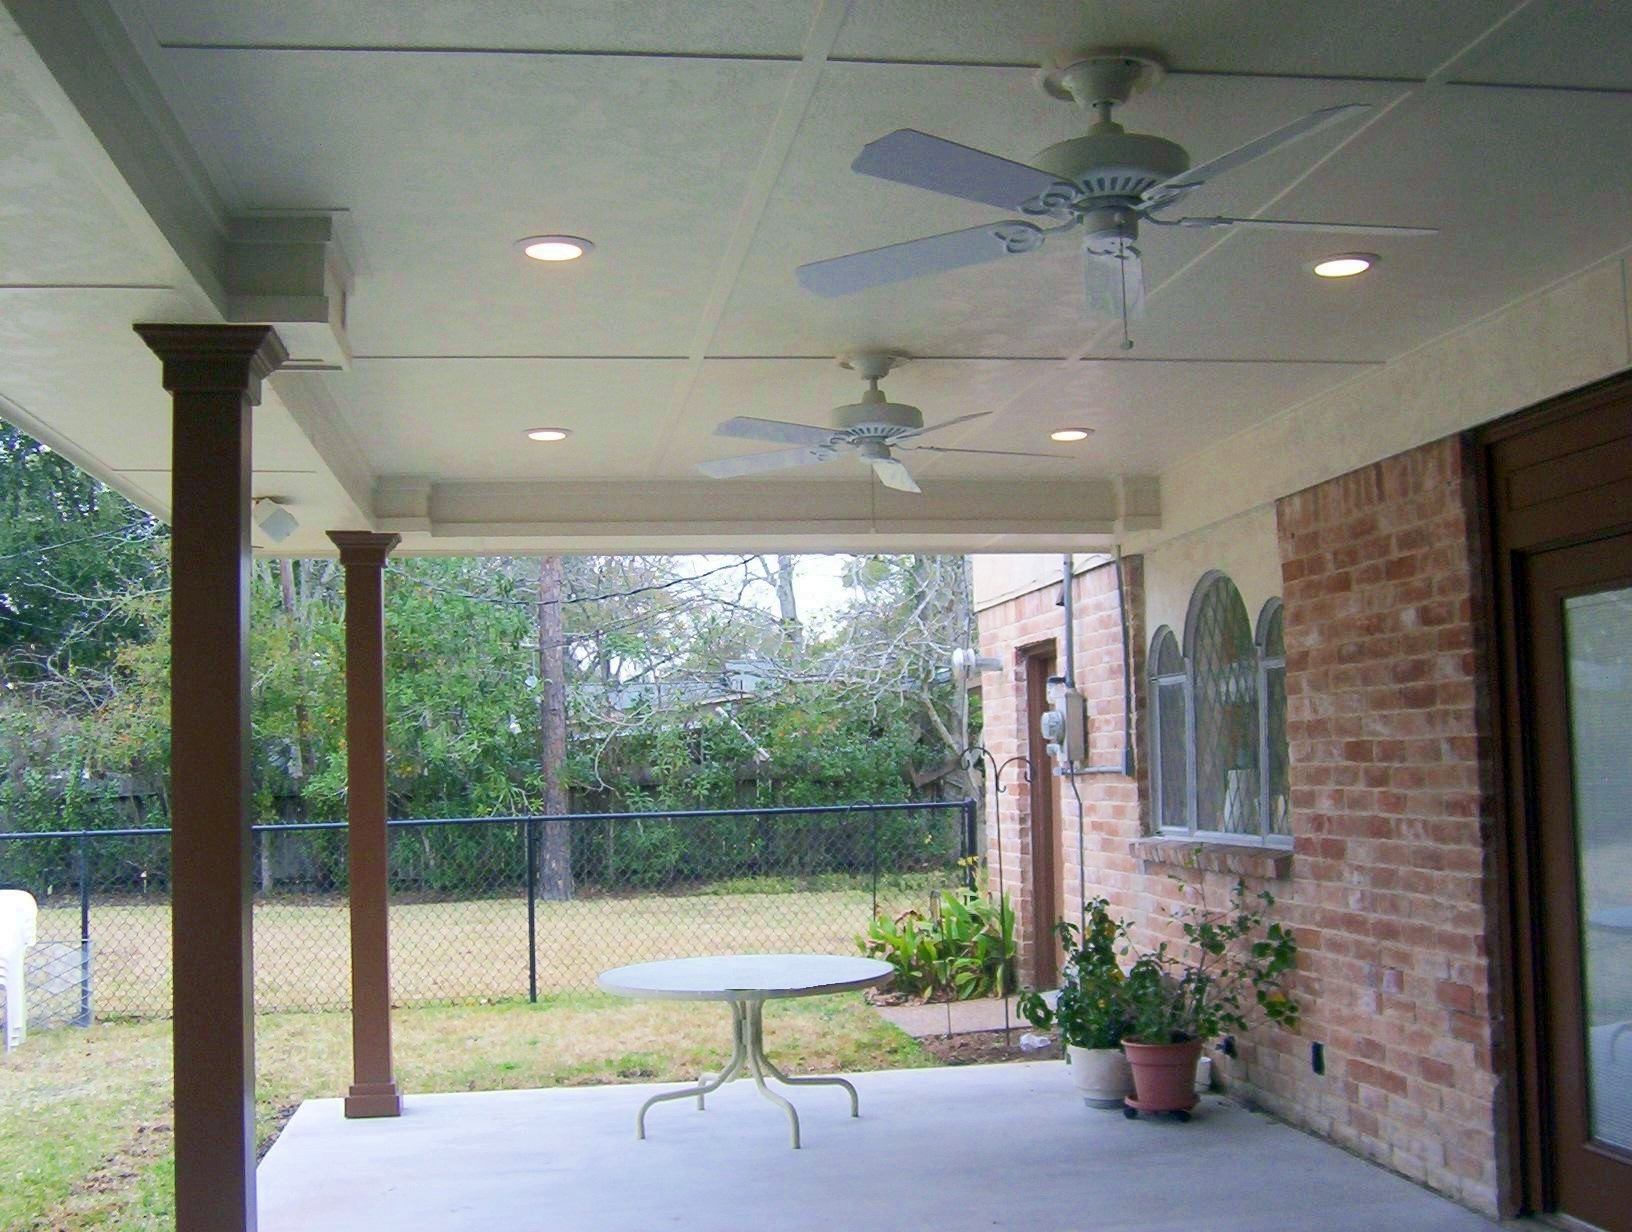 Outdoor Deck Ceiling Lights Intended For Most Popular Patio Outdoor Ceiling Fan With Light (View 3 of 20)